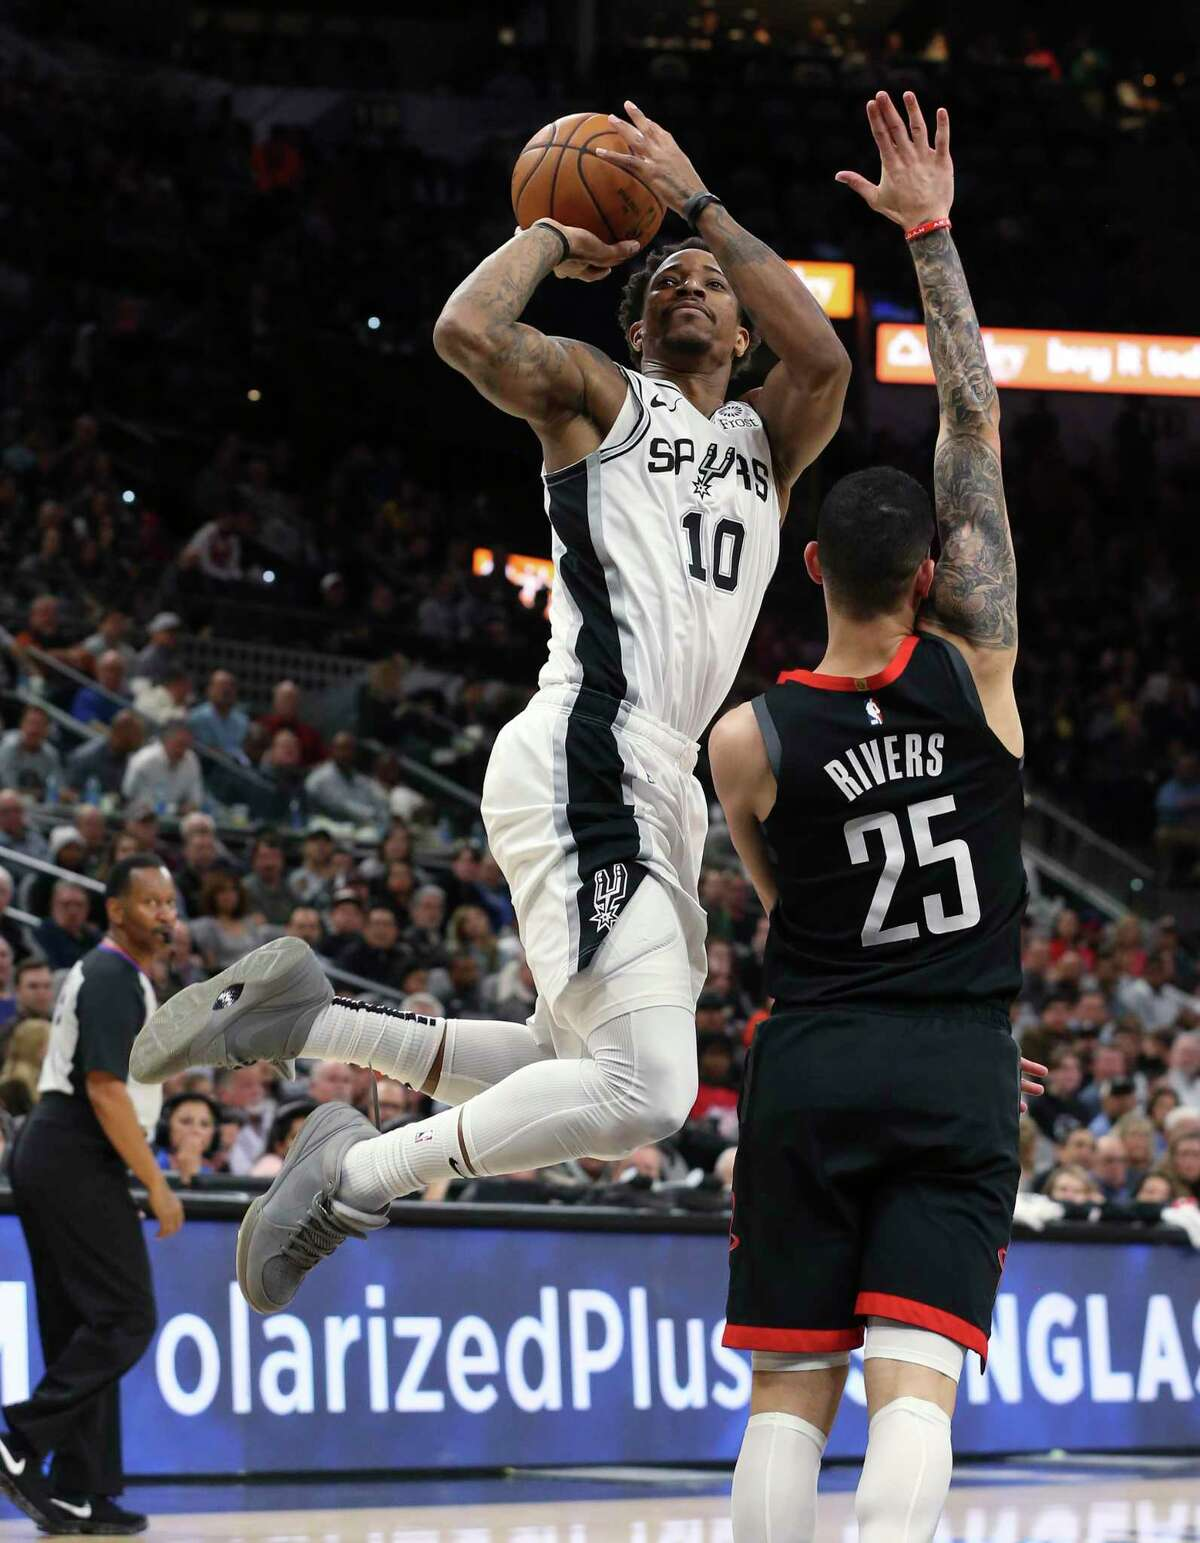 Spurs' DeMar DeRozan (10) shoots after a foul by Houston Rockets' Austin Rivers (25) during their game at the AT&T Center on Tuesday, Dec. 3, 2019.